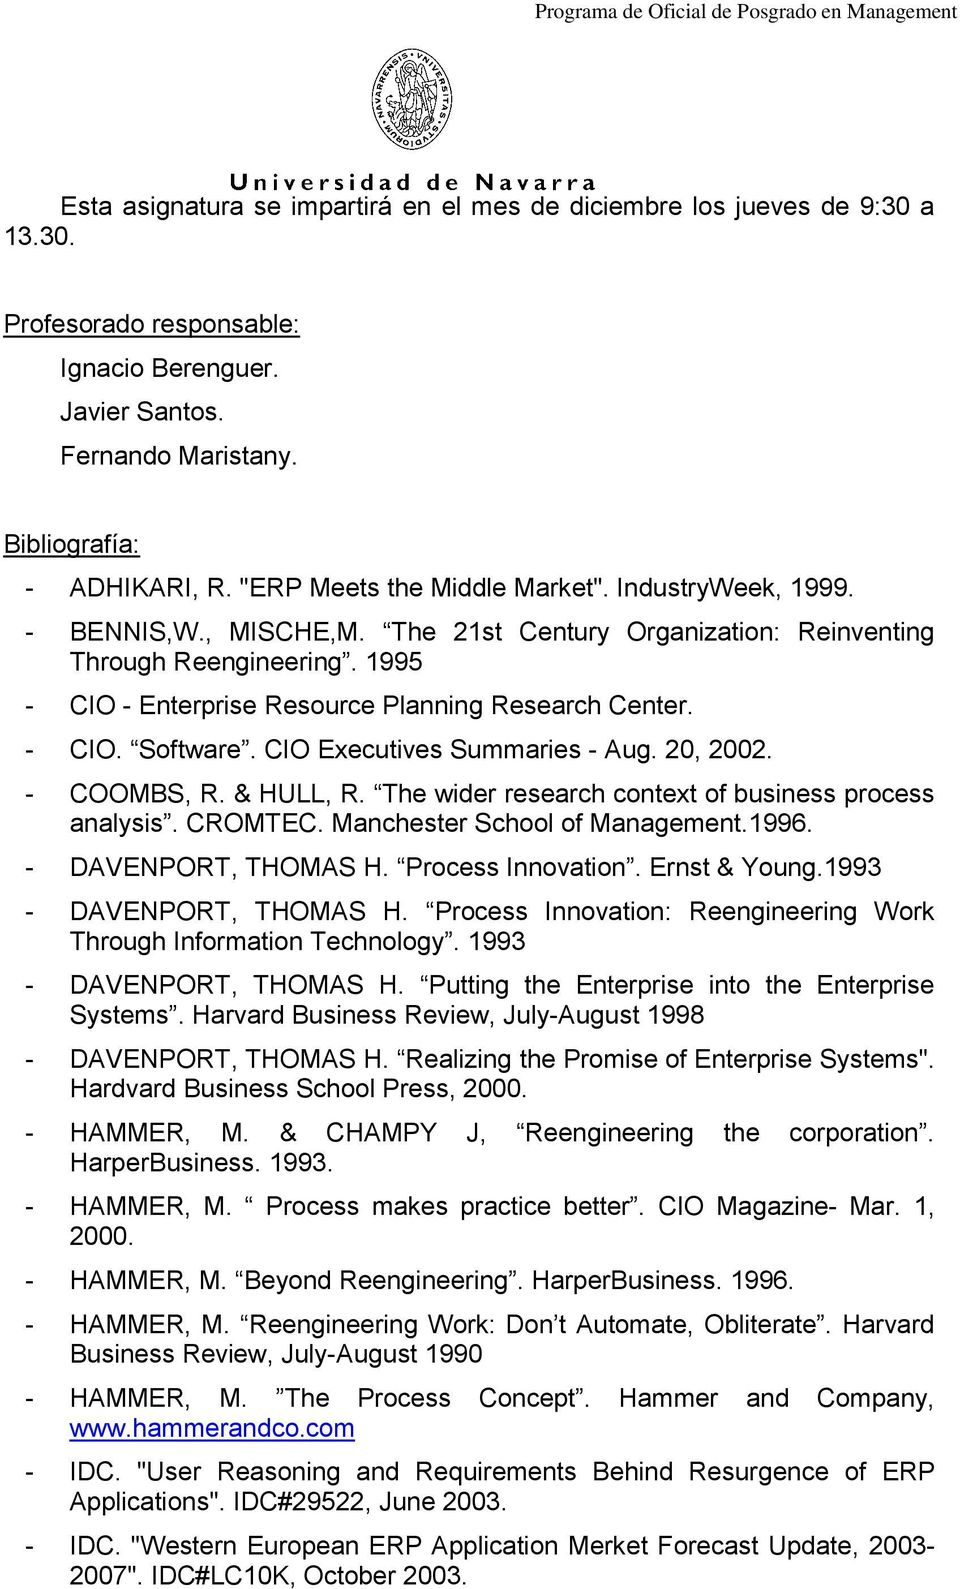 - CIO. Software. CIO Executives Summaries - Aug. 20, 2002. - COOMBS, R. & HULL, R. The wider research context of business process analysis. CROMTEC. Manchester School of Management.1996.